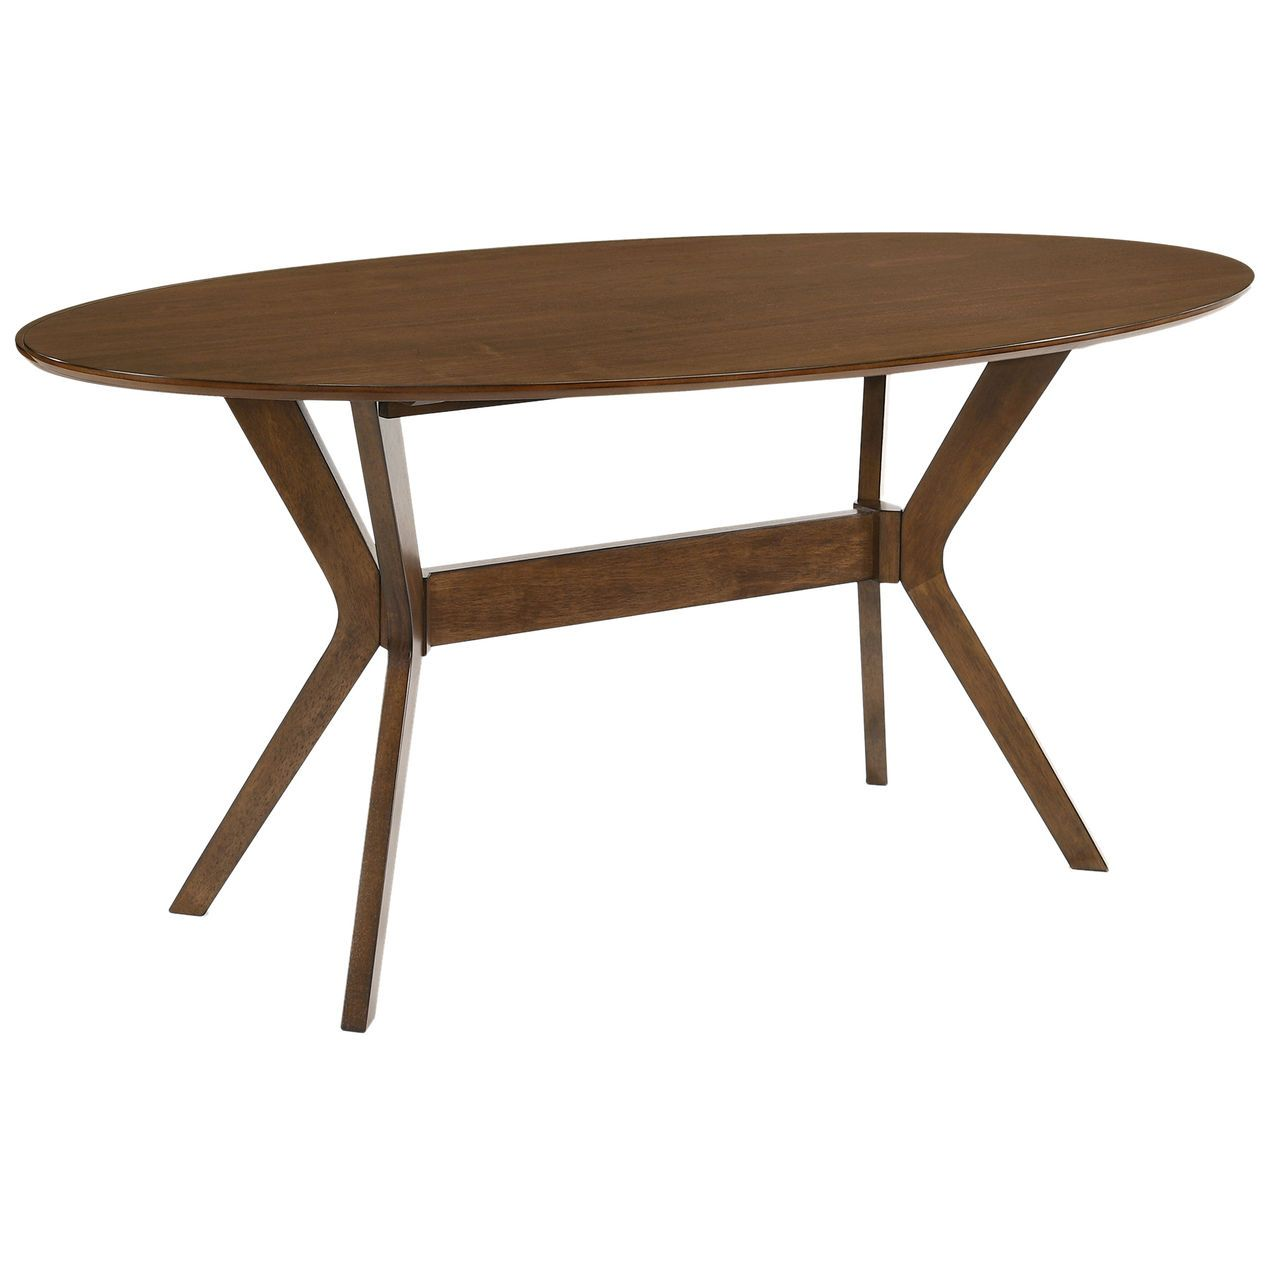 Caleb Oval Dining Table Oval Table Dining Dining Table With Bench Oval Kitchen Table